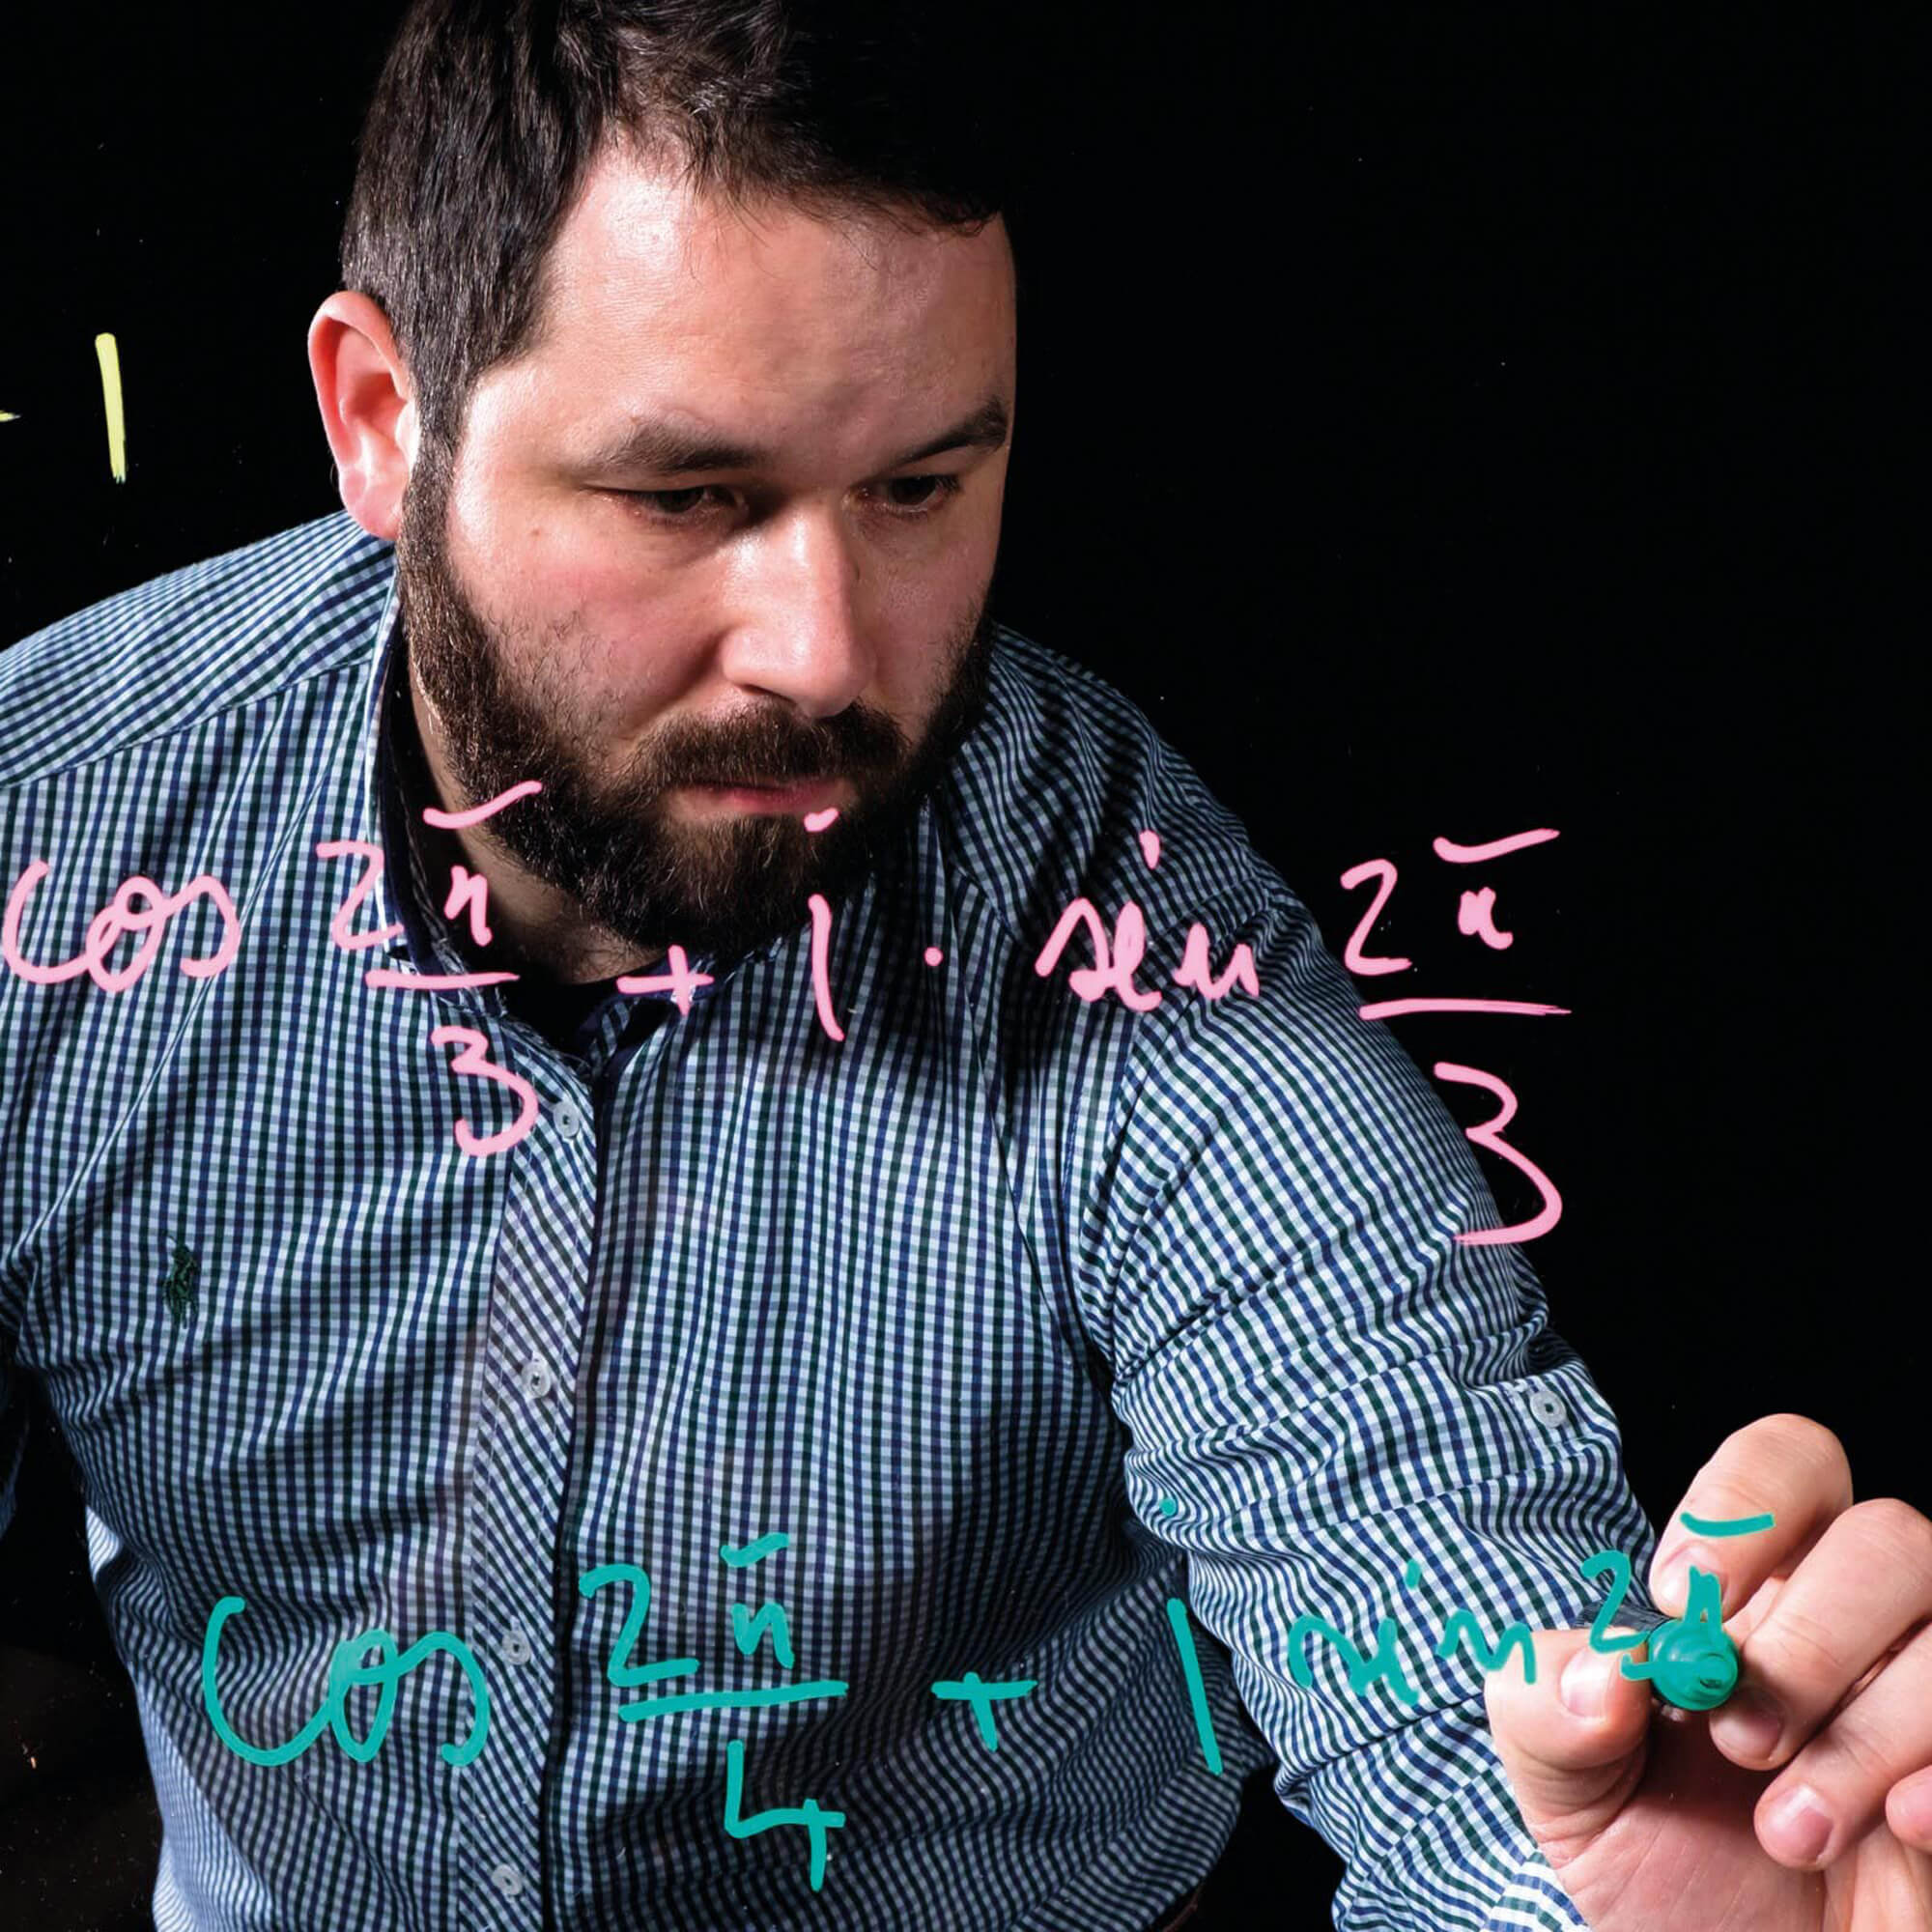 Man writing maths equations on glass screen